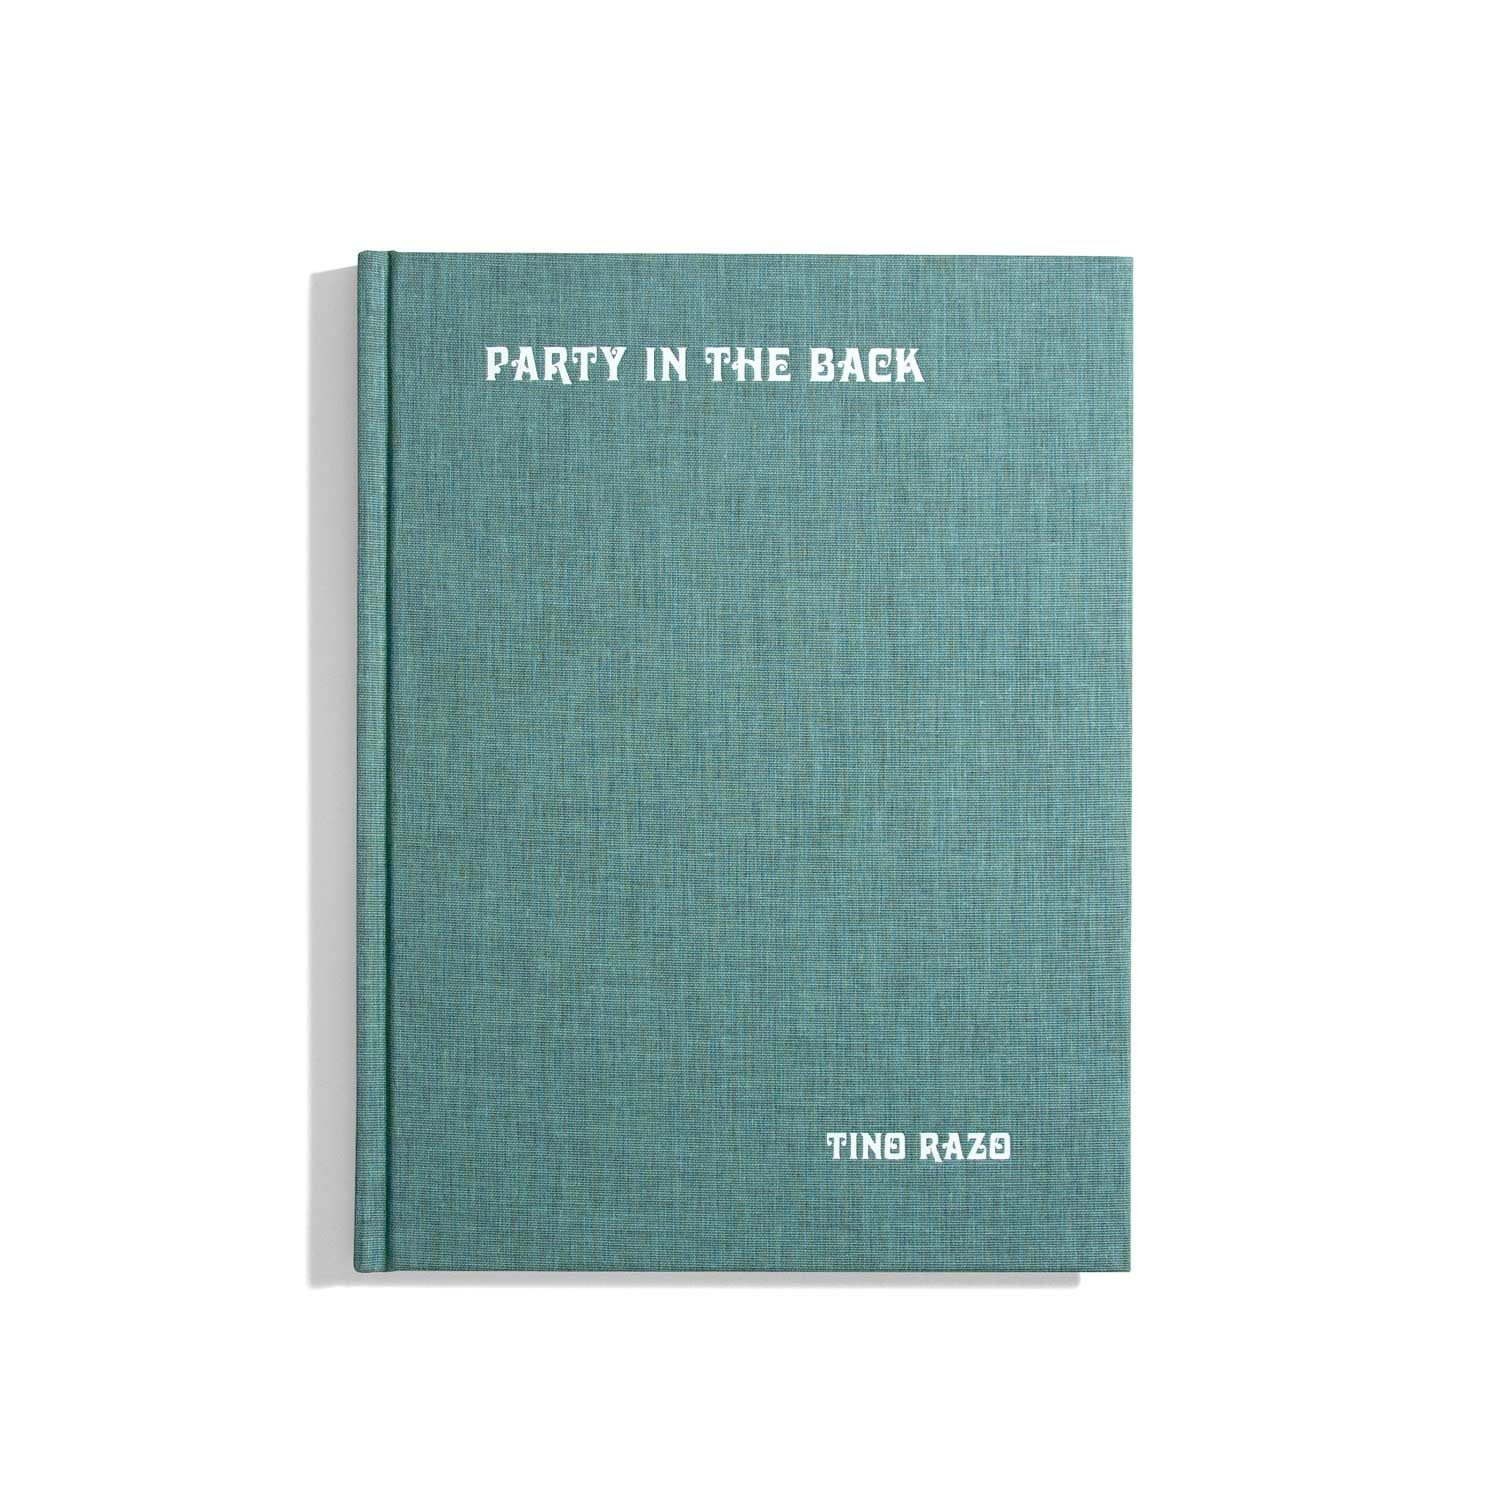 Party in the back - Tino Razo